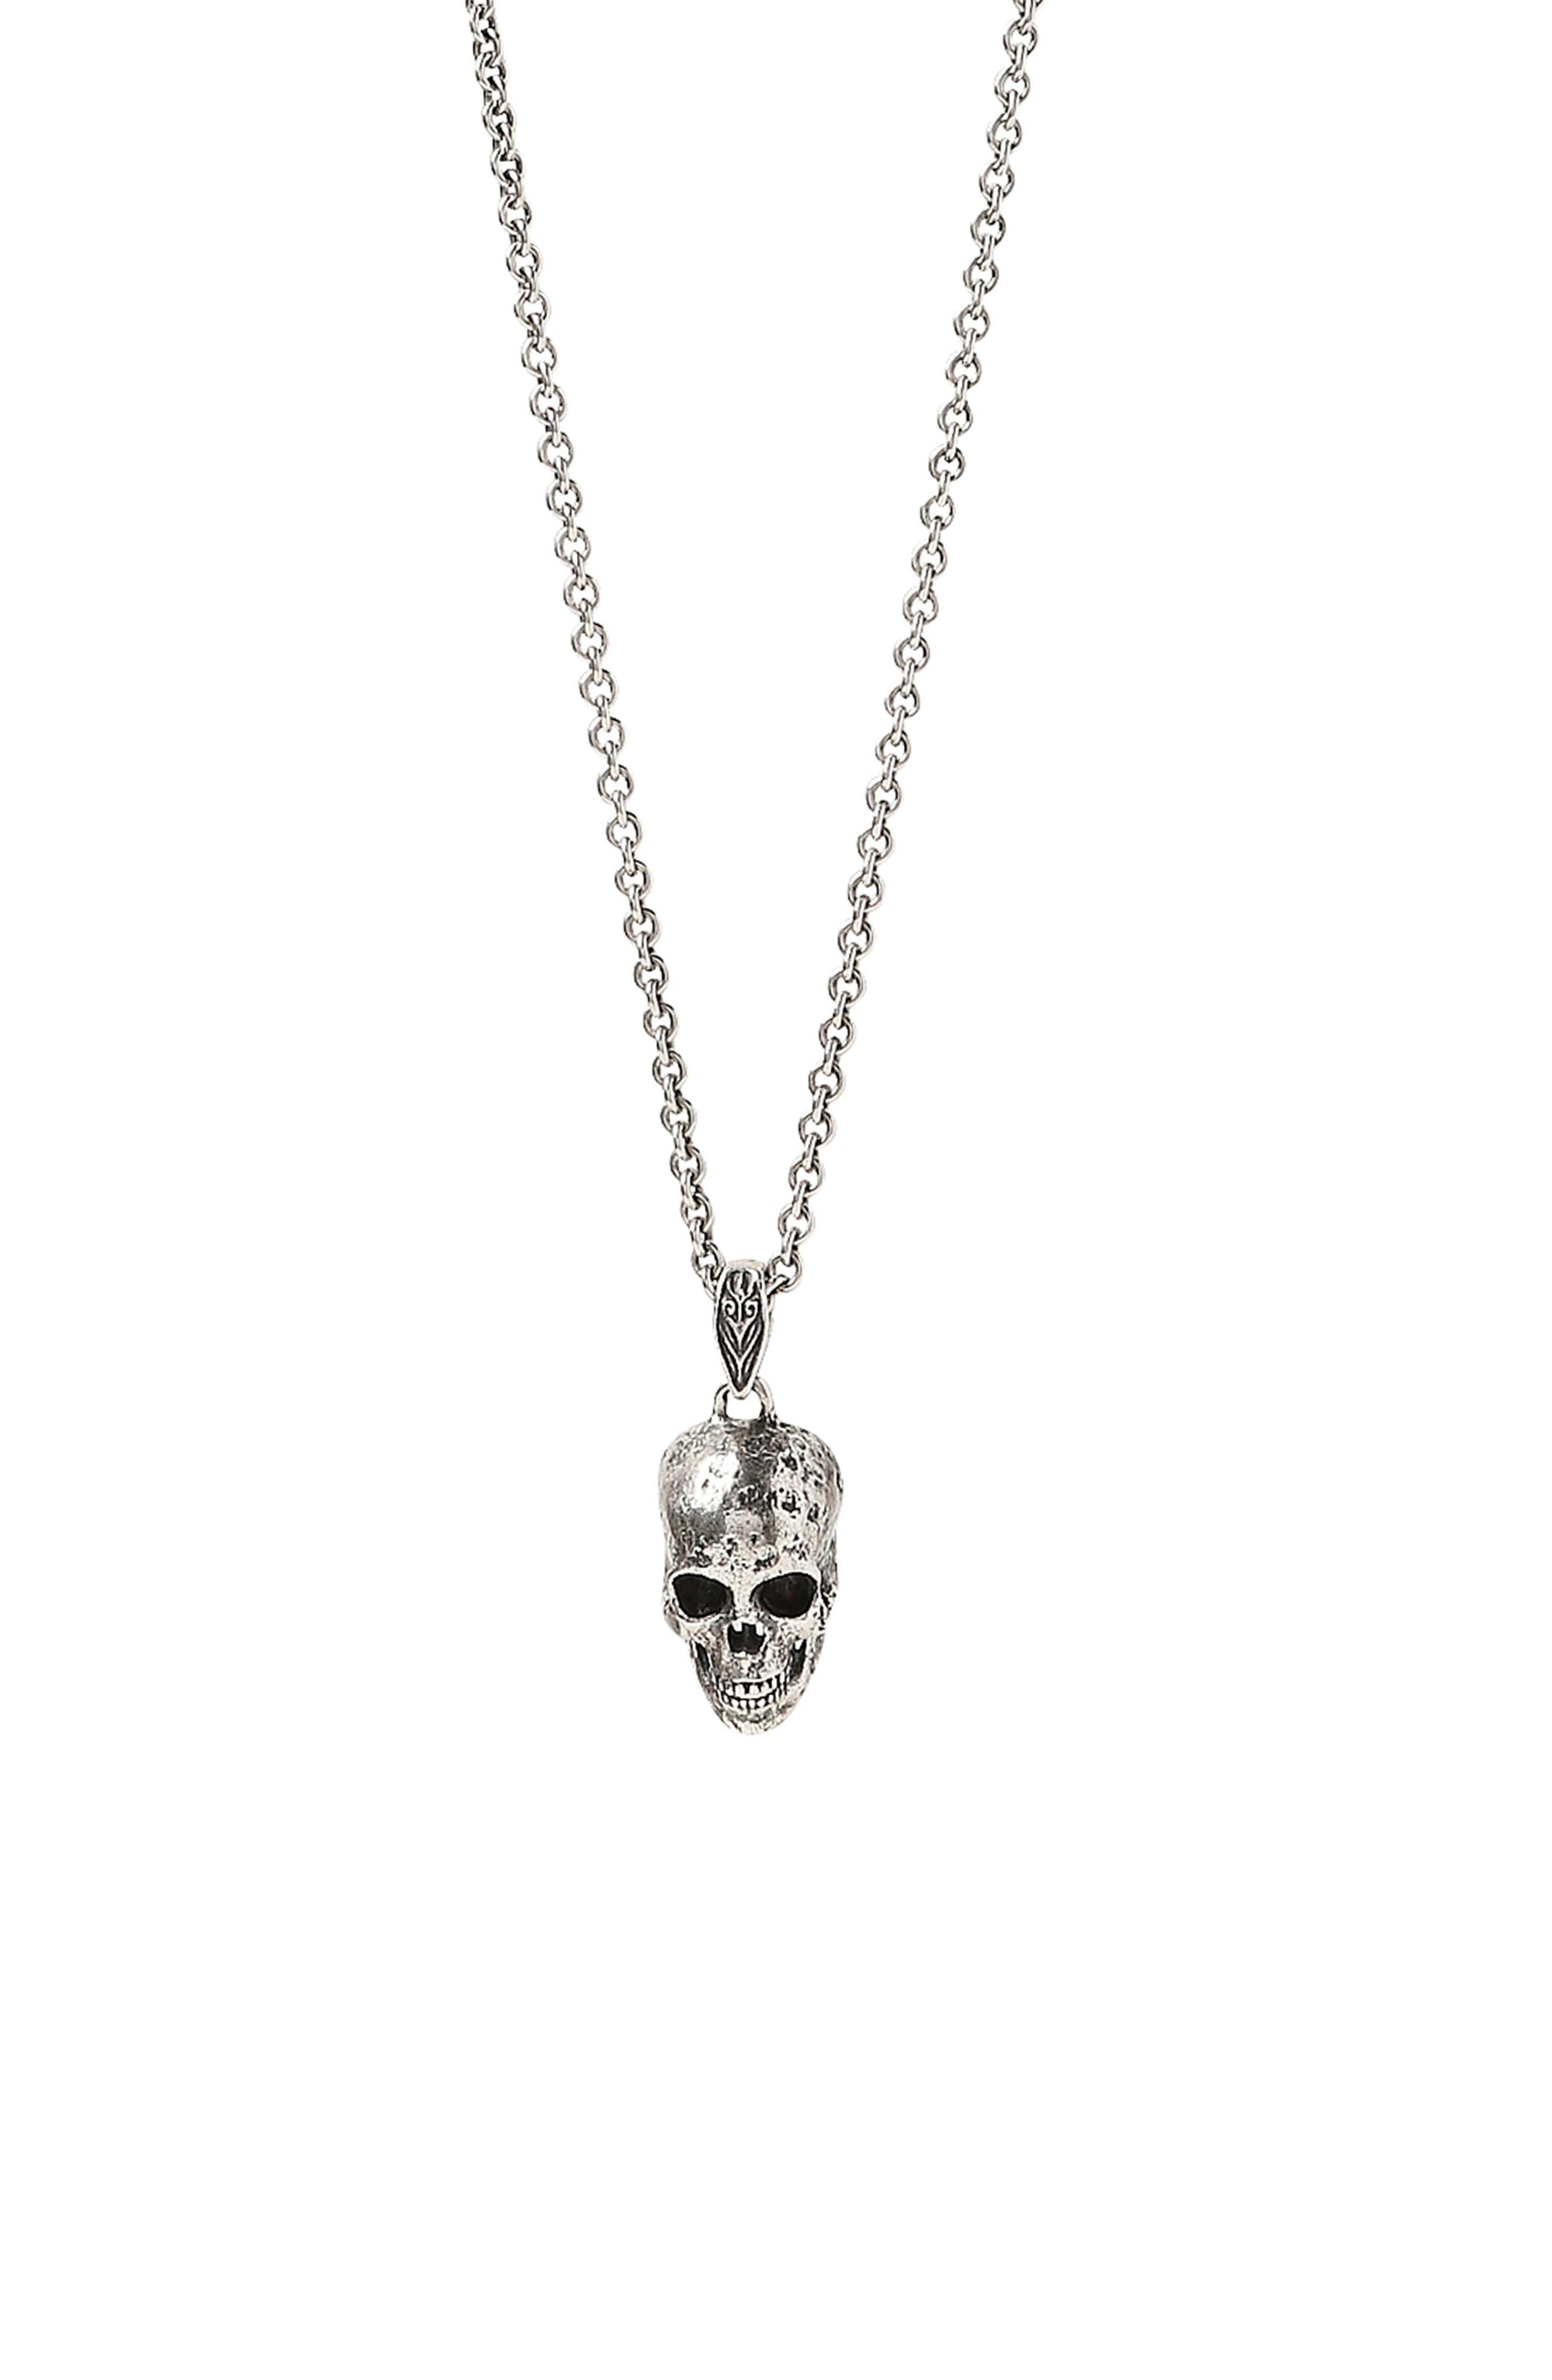 Distressed Skull Pendant Necklace